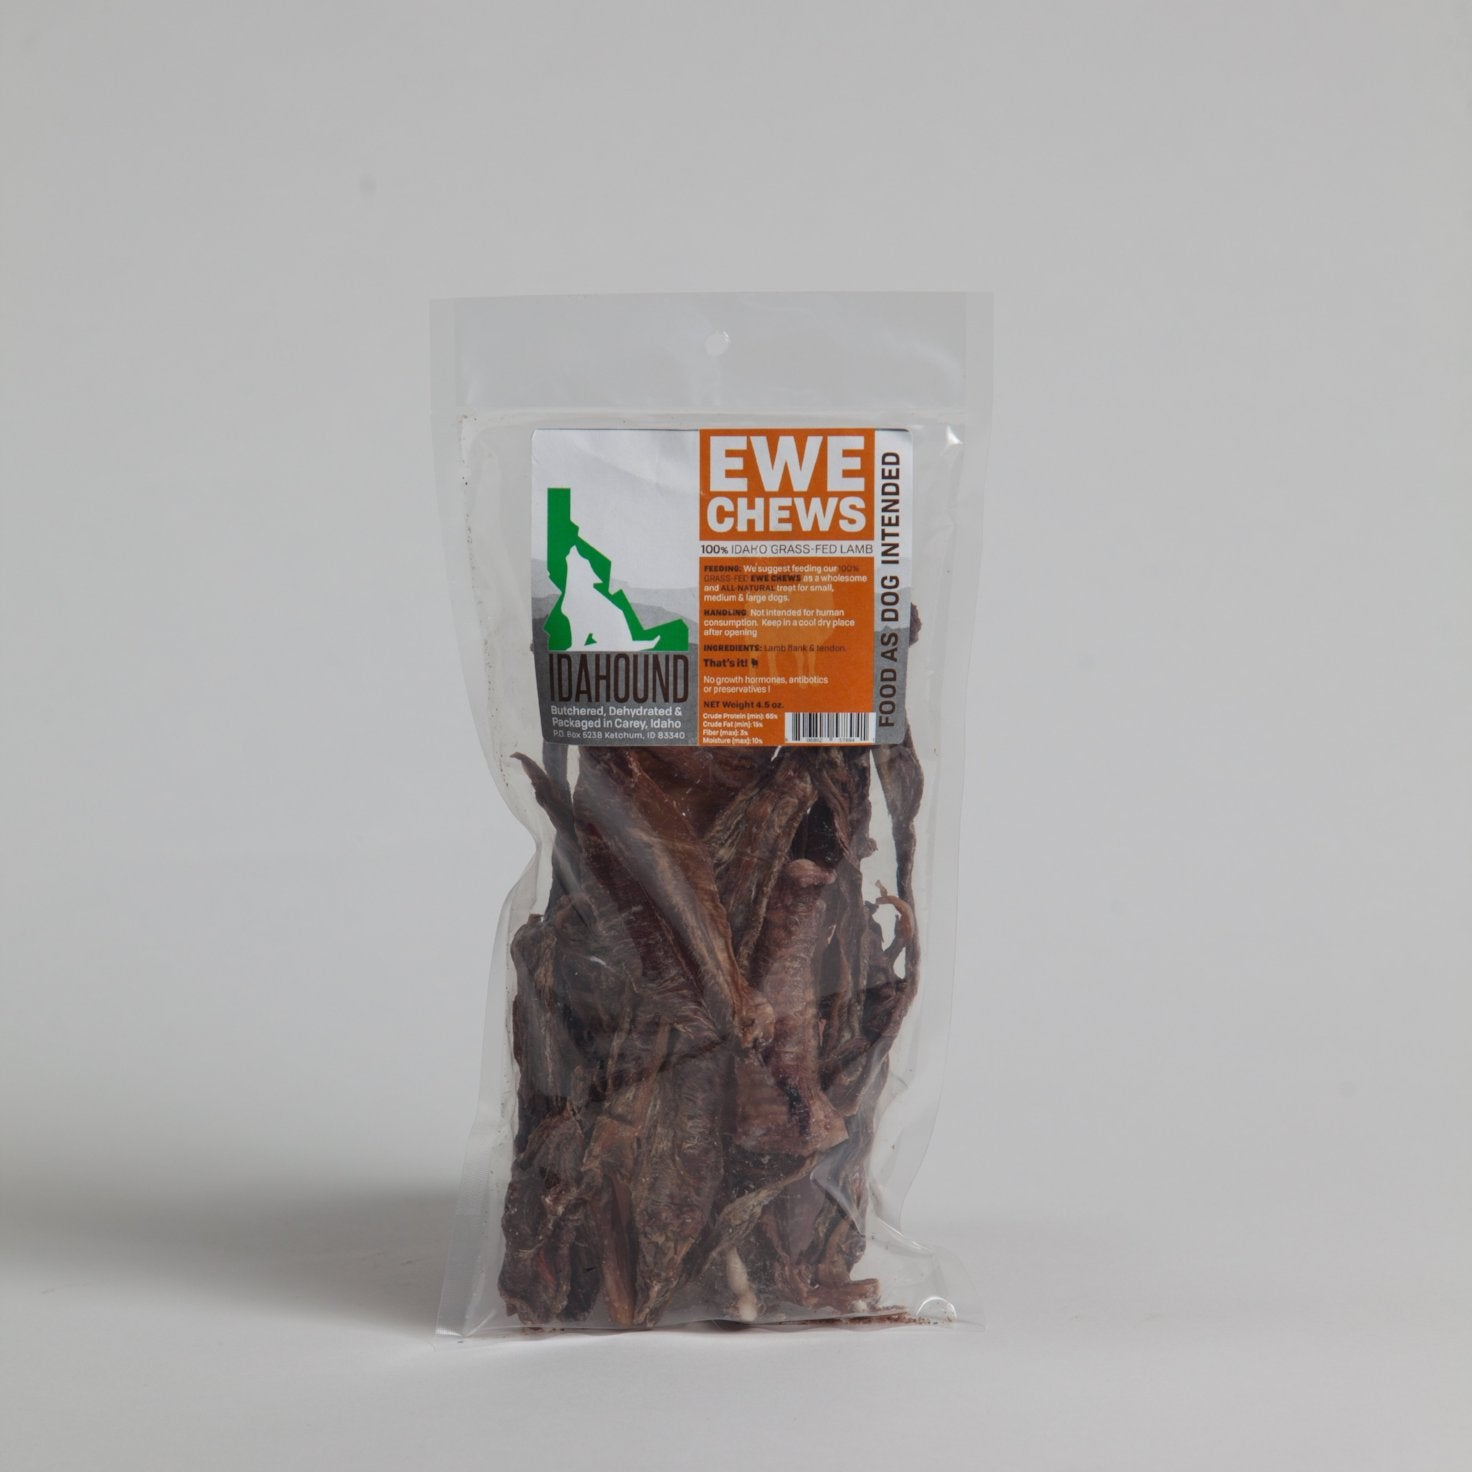 Ewe Chews (4.5 oz.) - SOLD OUT